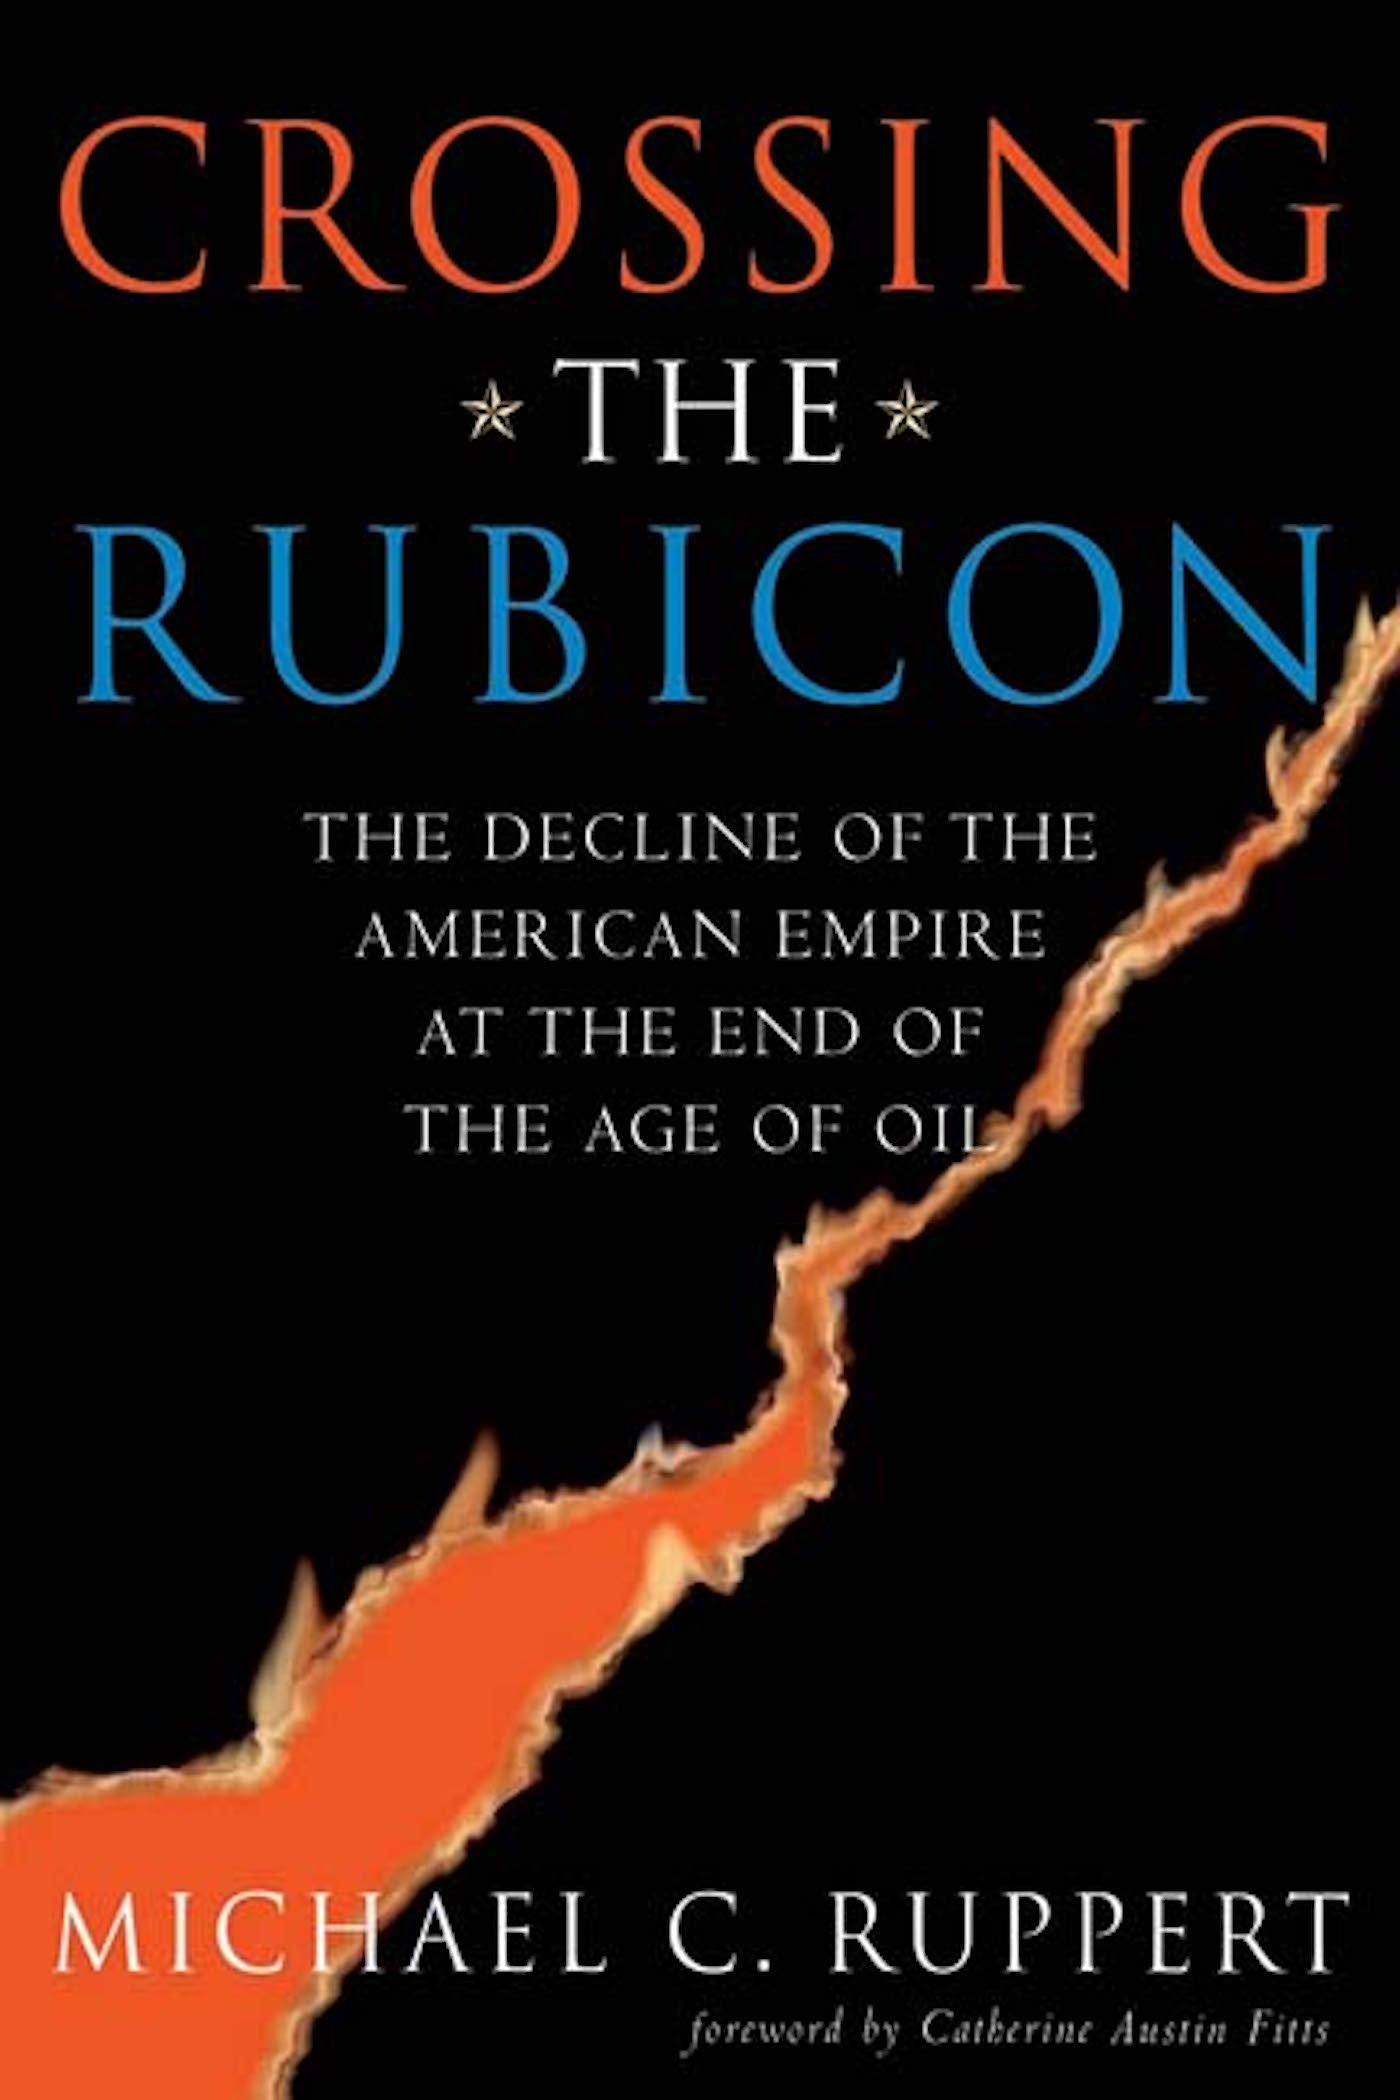 Crossing The Rubicon: The Decline Of The American Empire At The End Of The  Age Of Oil: Michael C Ruppert, Catherine Austin Fitts: 9780865715400: